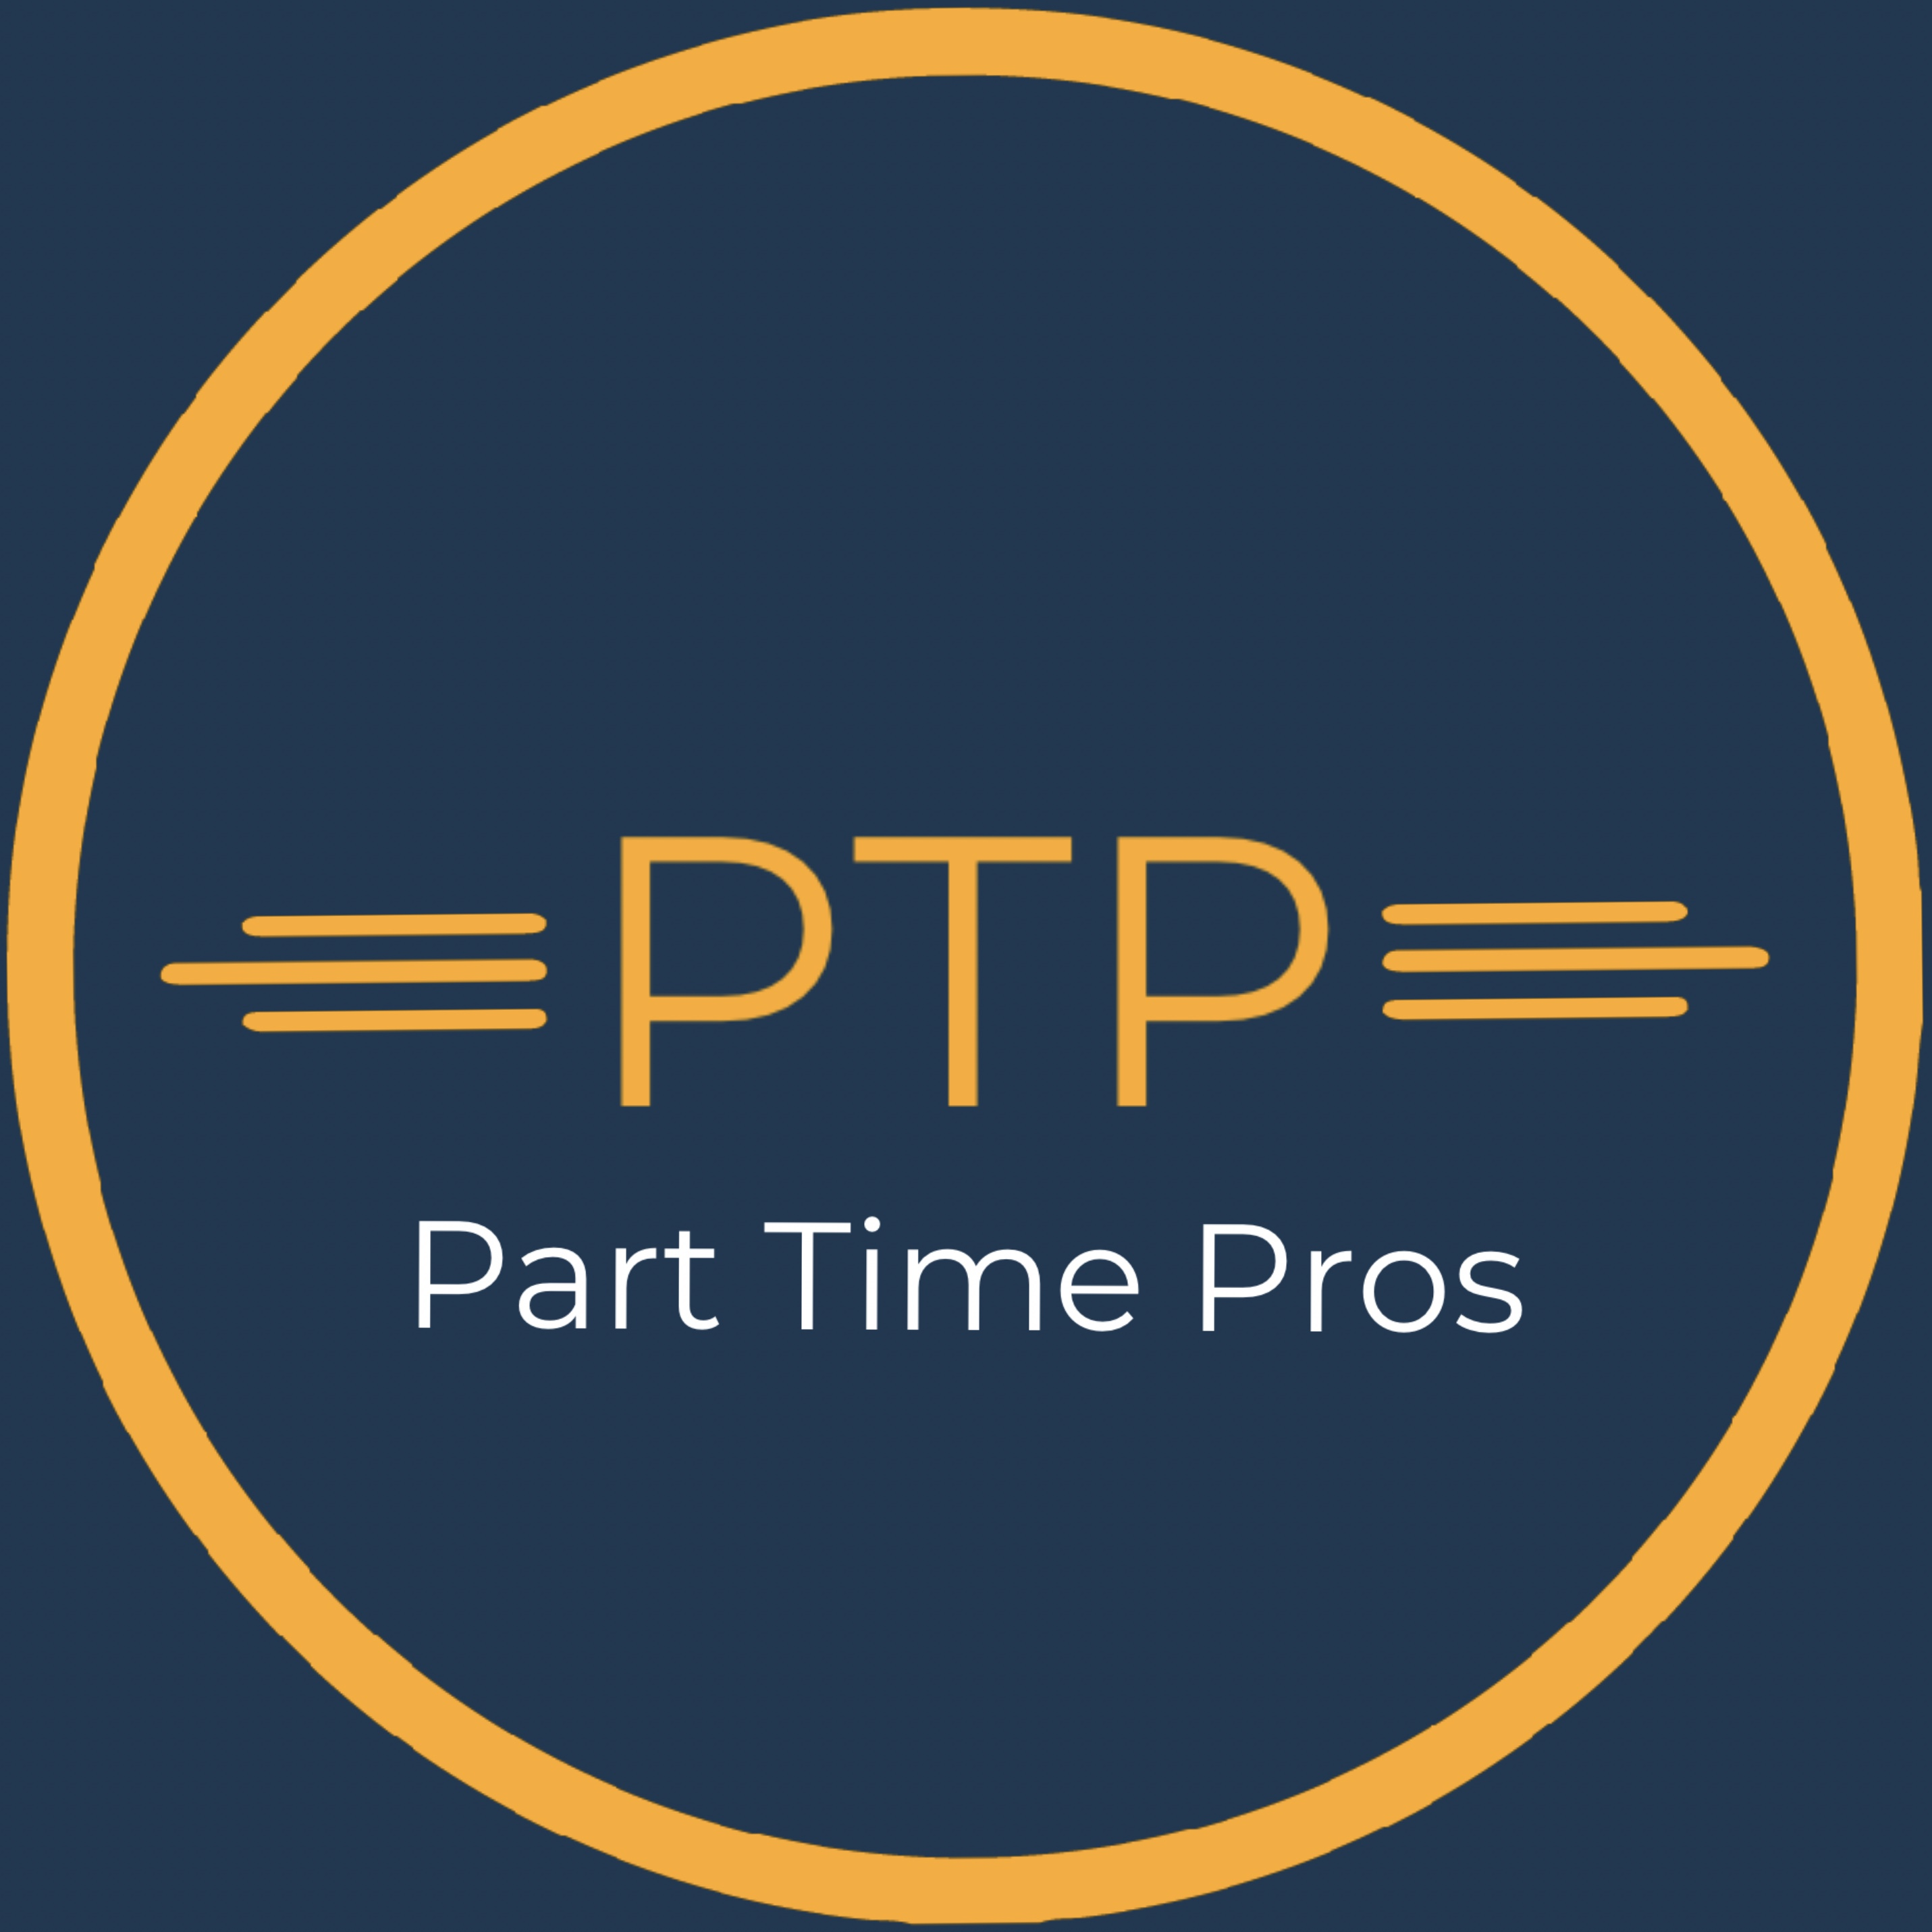 Show artwork for Part Time Pros